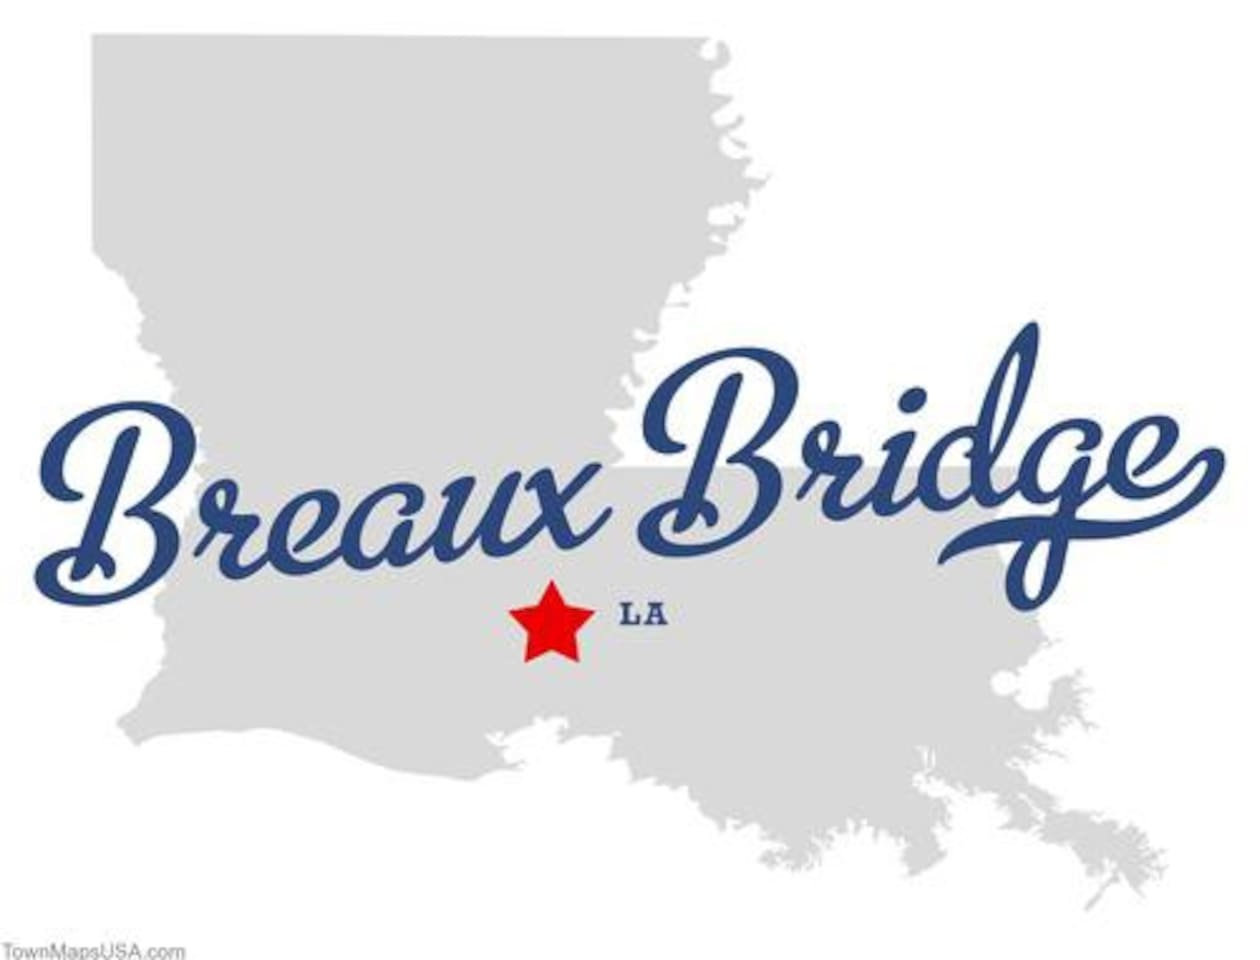 Breaux Bridge is located on Interstate 10 Exit 109, about 2 hrs from New Orleans or 3 hrs from Houston.